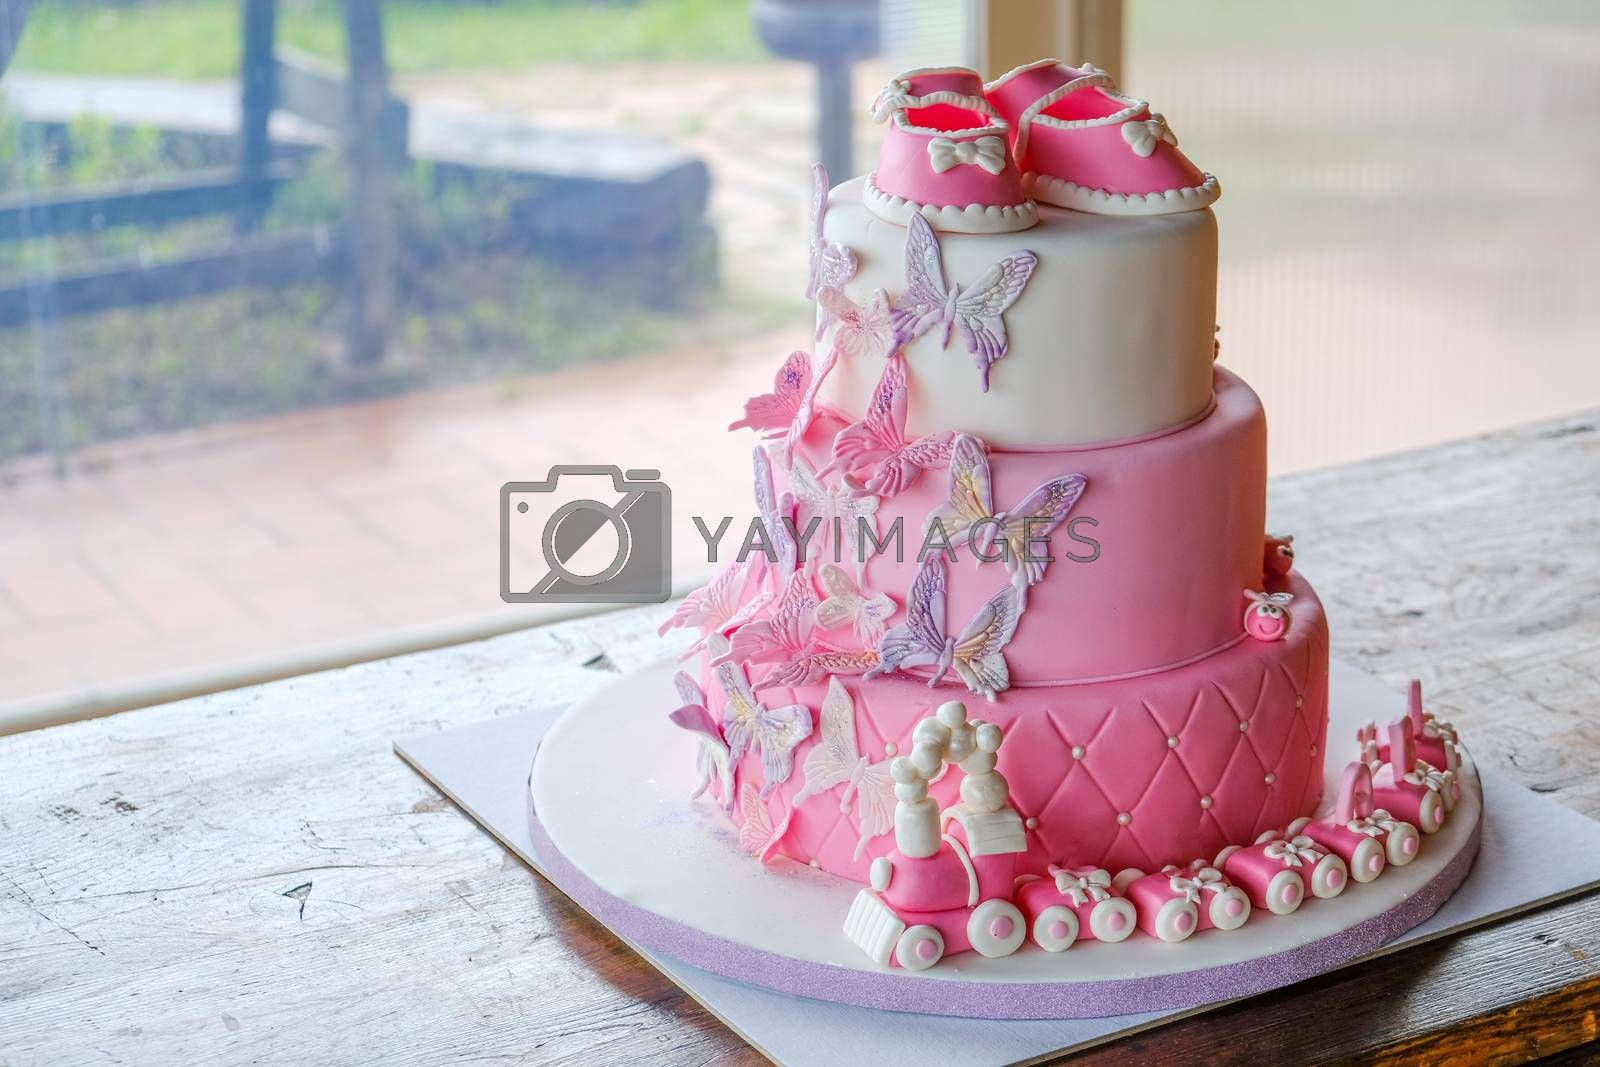 fist cake for a little baby girl birthday for celebrating baptism - pink sugarpaste layered cake design no people .